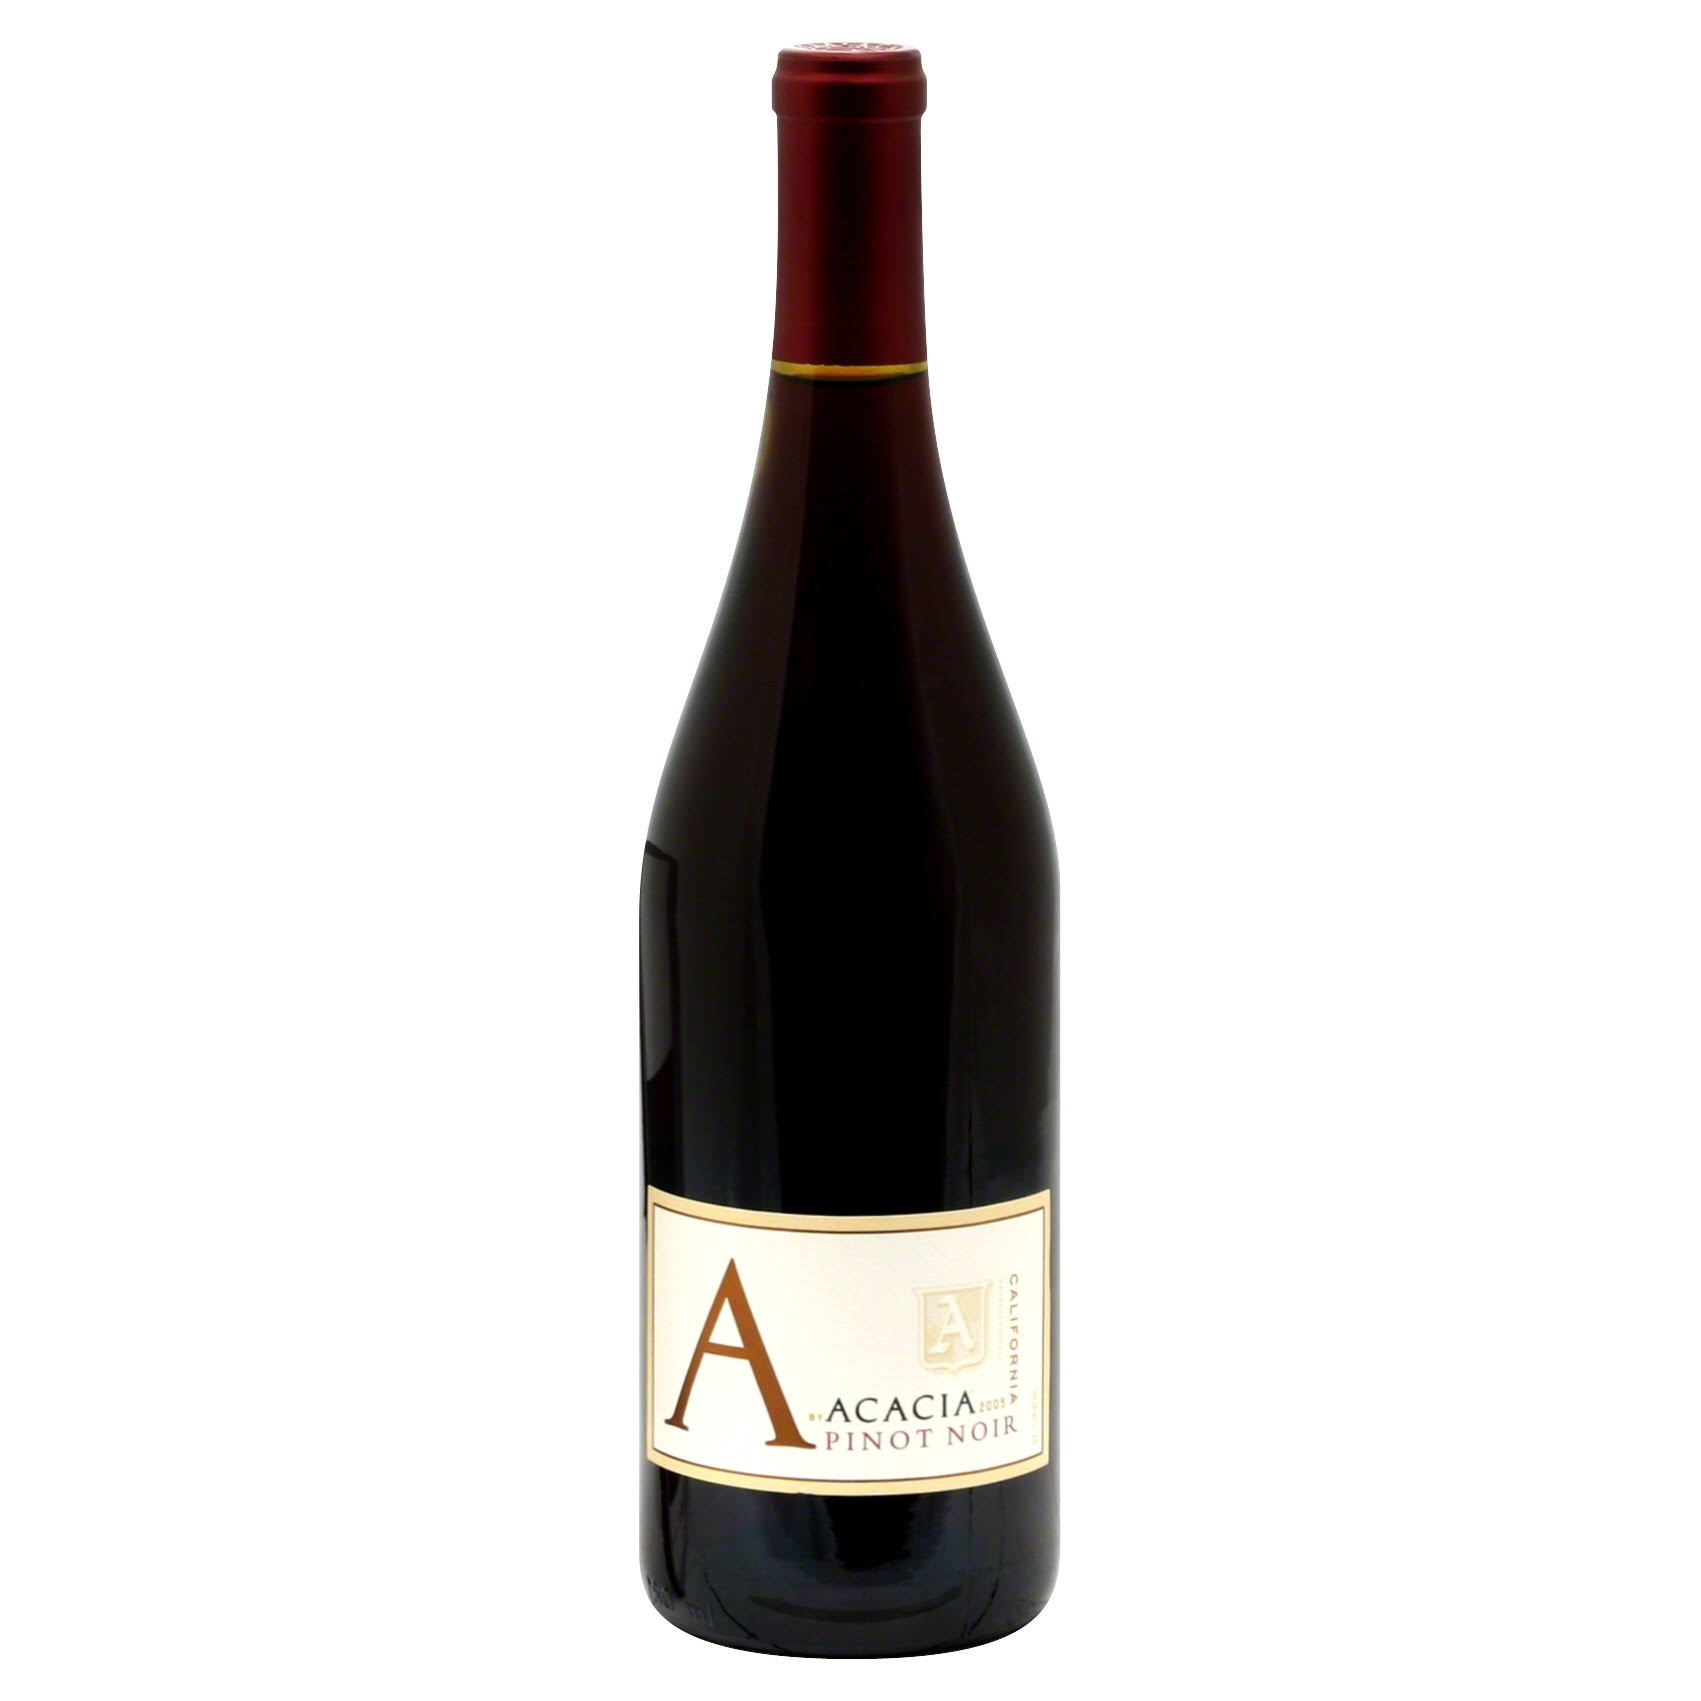 Acacia Pinot Noir, California, 2005 - 750 ml